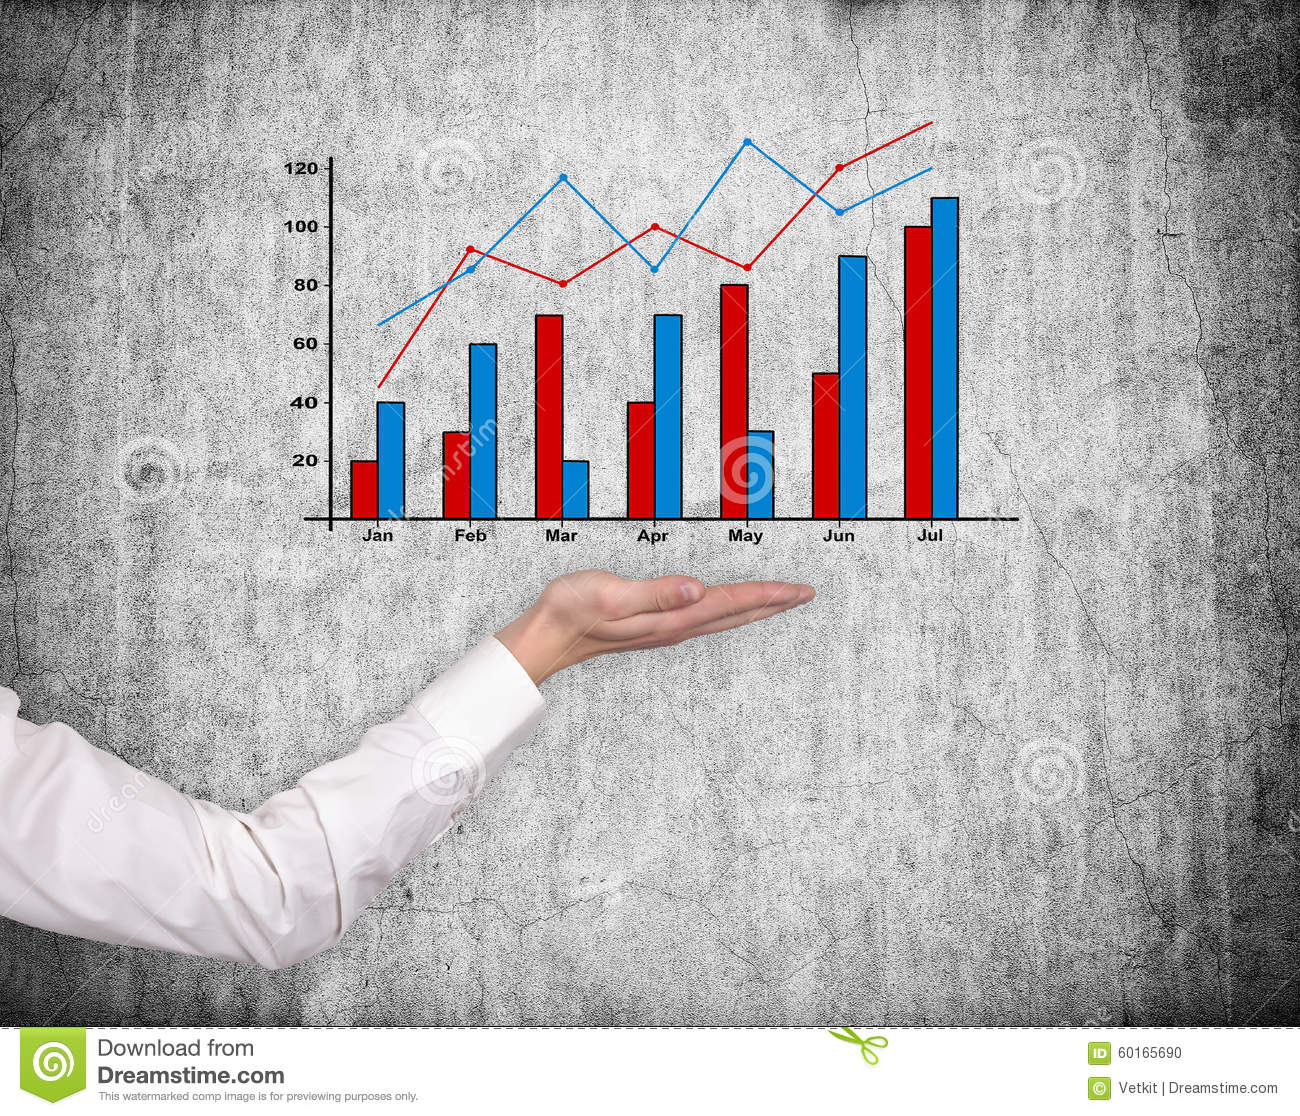 Hand holding stock chart